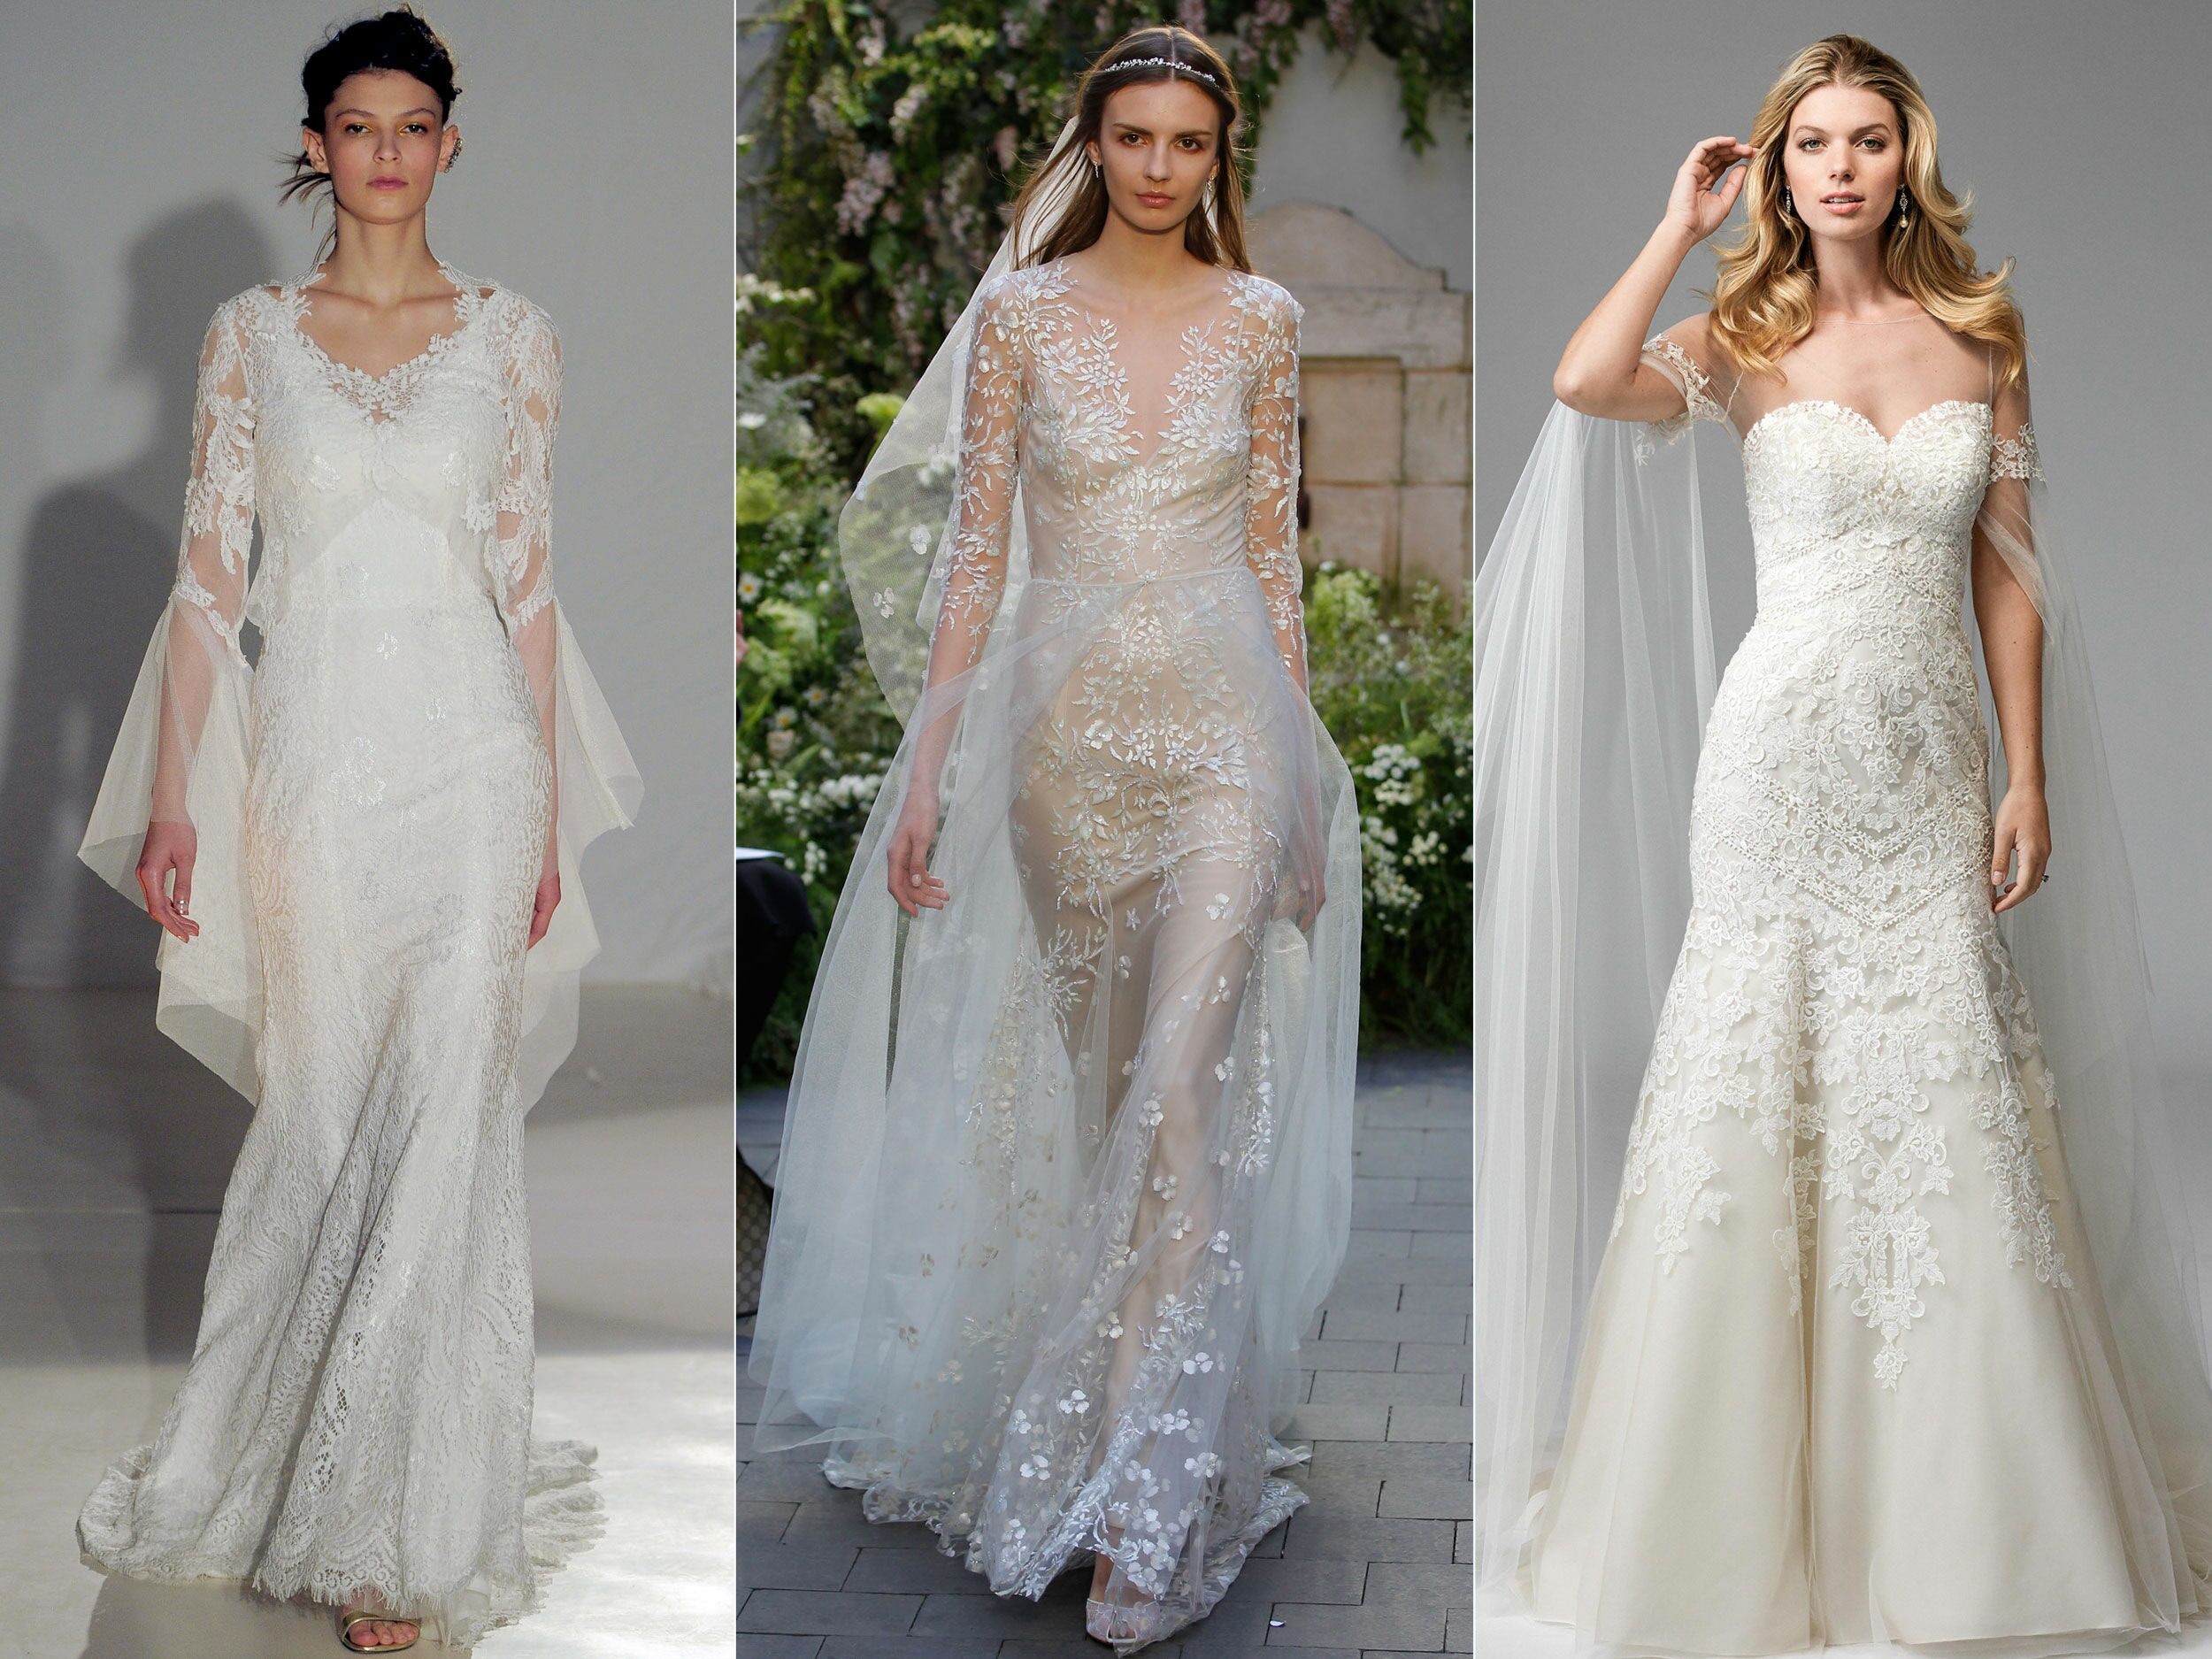 Top 2019 Wedding Dresses: Top Wedding Dress Trends From Spring 2017 Bridal Fashion